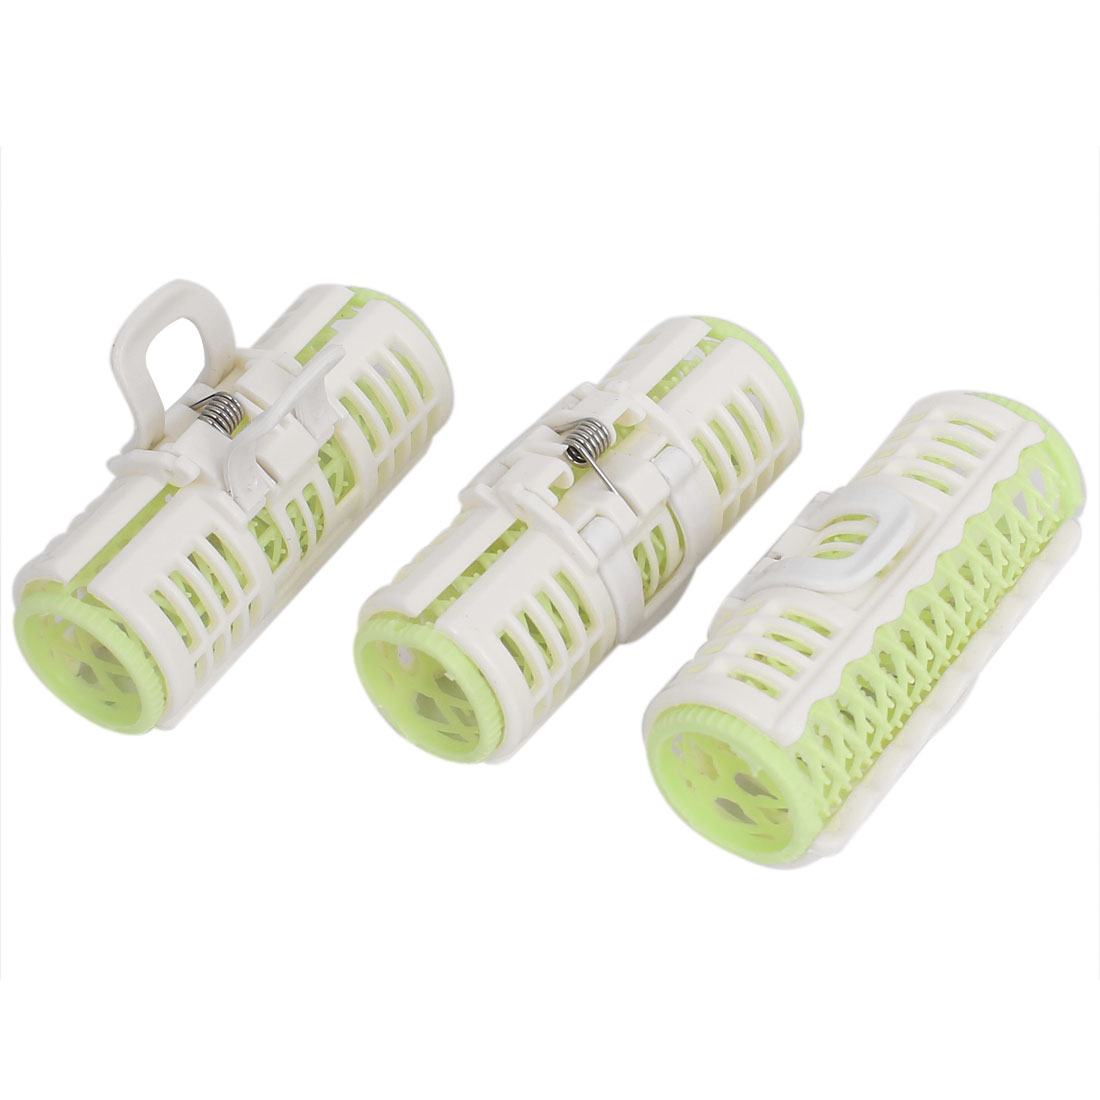 Women Plastic Hair Curler Grip Roller Cling Hairdressing DIY Tool 3pcs